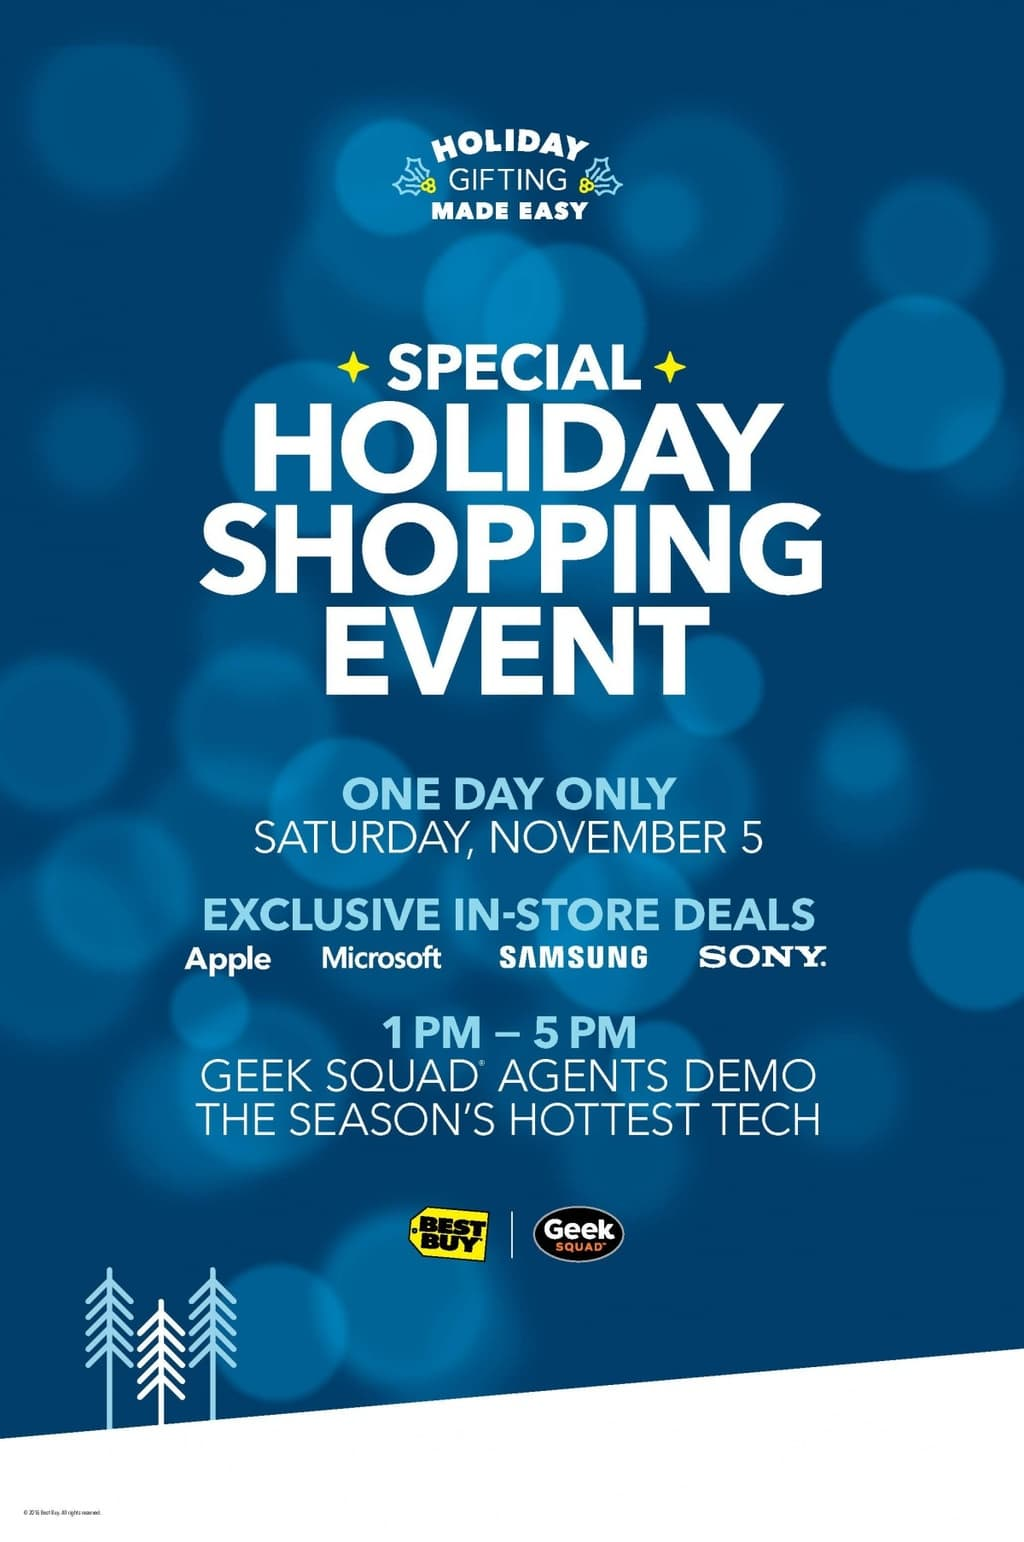 EXPERIENCE WHAT'S NEWEST IN TECH AND SAVE BEST BUY is hosting their Shopping Event on Saturday, November 5th  from 1pm to 5pm.